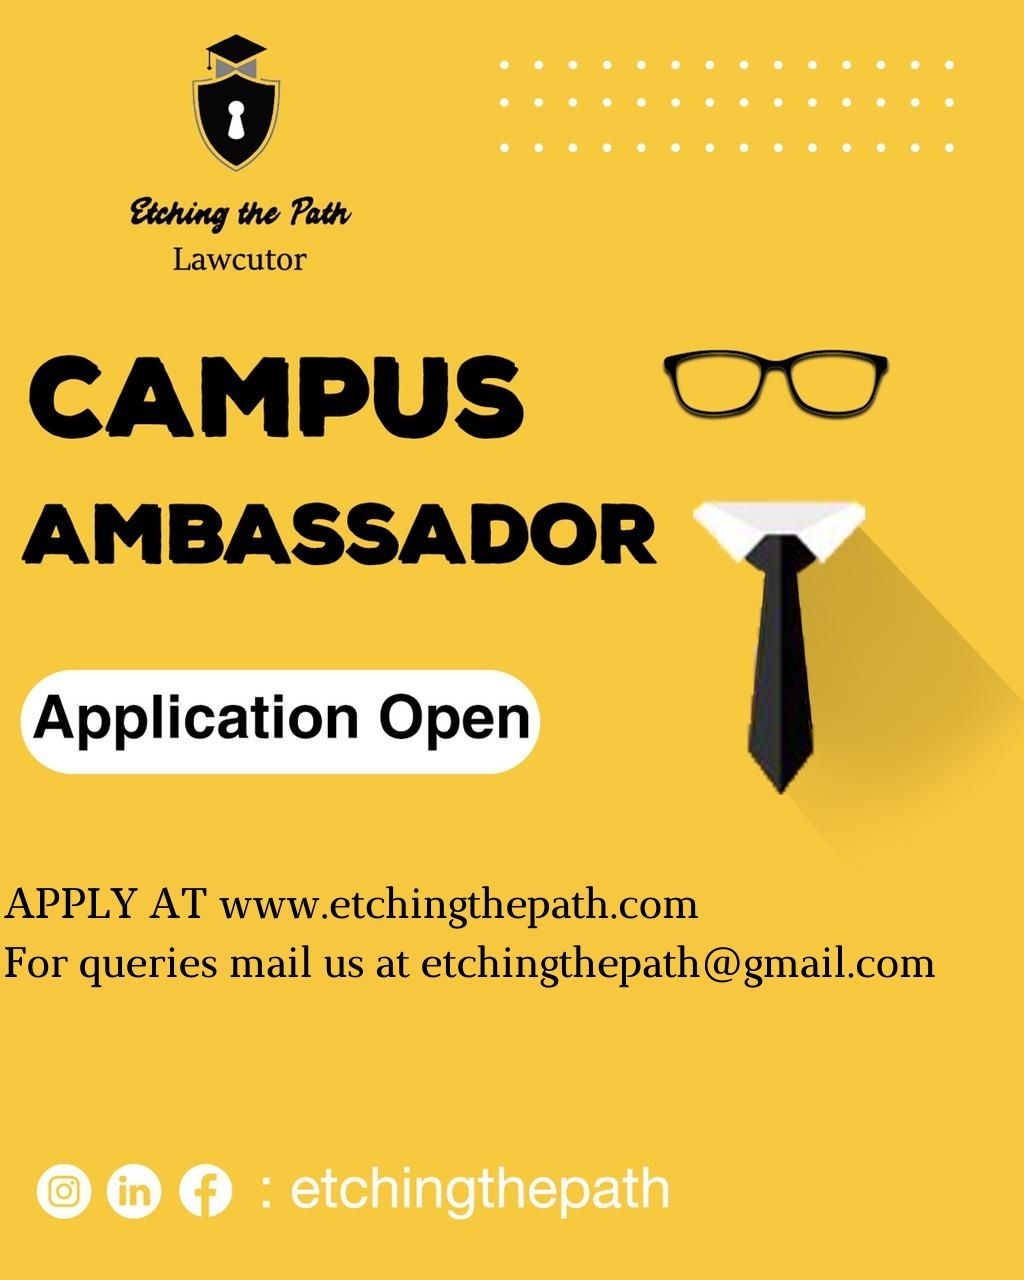 Etching the Path-Campus ambassador Program